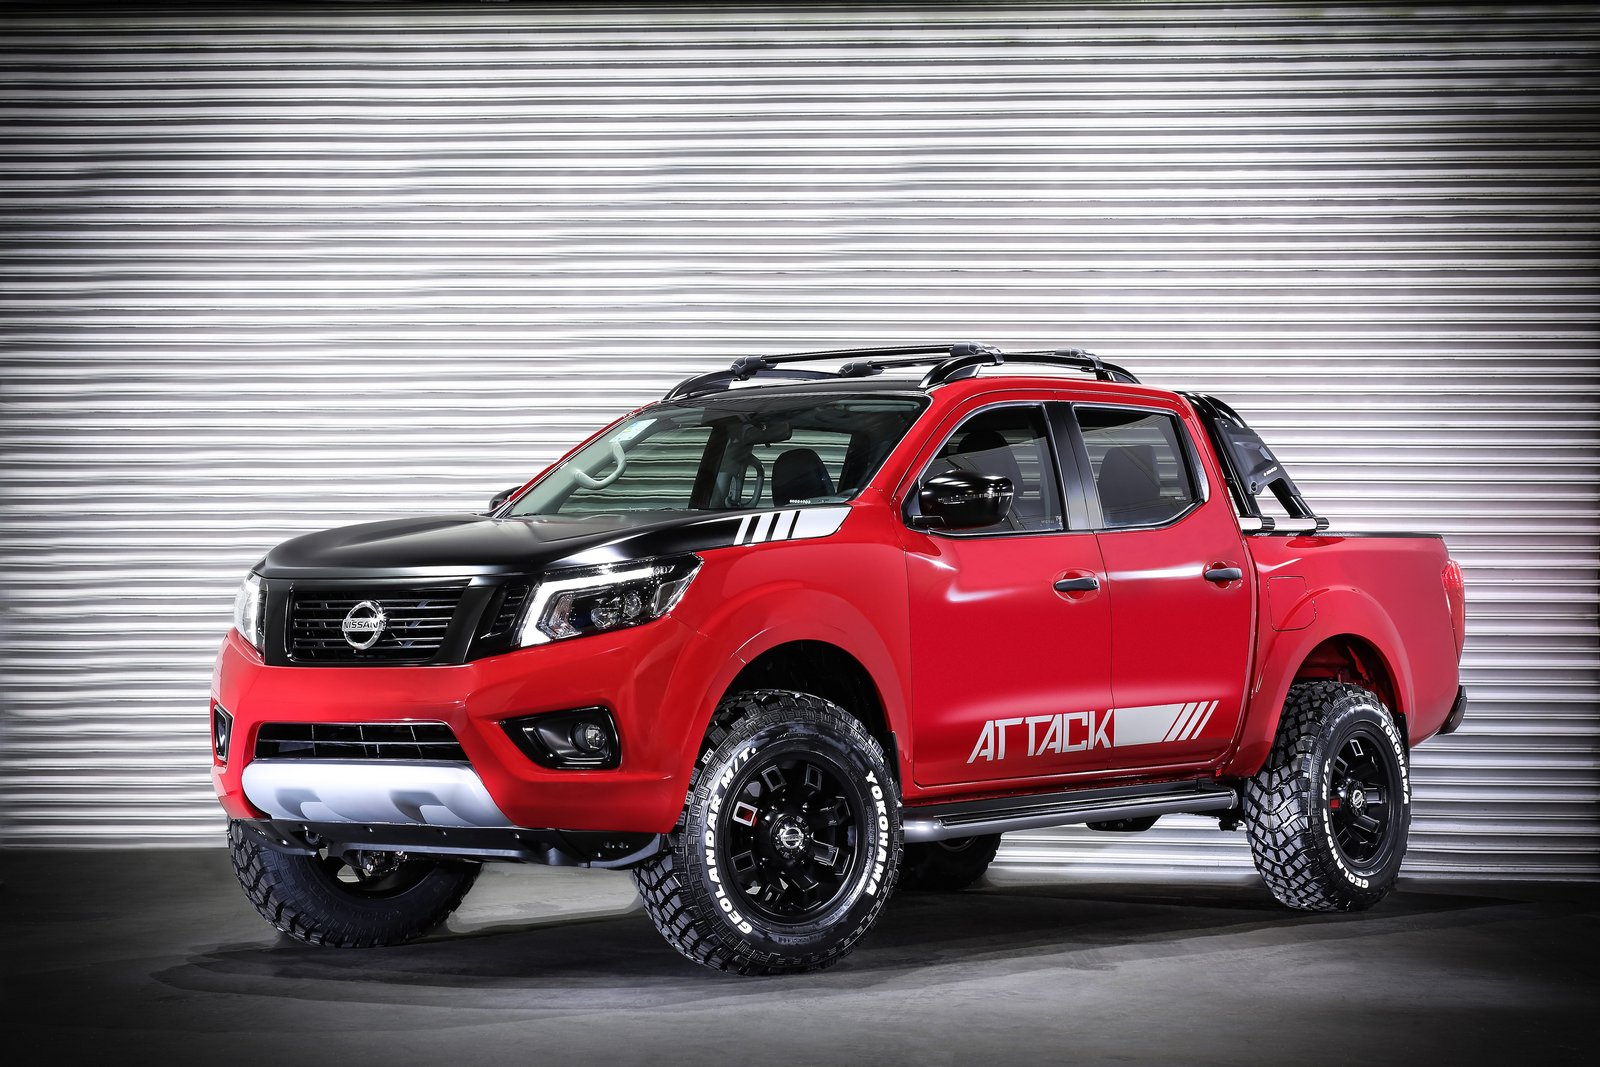 "BUENOS AIRES, Argentina (June 9, 2017) – Nissan is set to impress at the 2017 Buenos Aires Auto Show by presenting the new Nissan Frontier Attack, a concept based on the iconic Frontier. It was inspired by extreme and imposing ""monster-trucks."" As was the case with the Kicks Concept in 2015 in Brazil, Nissan hopes to find out what Argentineans think about the Frontier Attack, setting the basis for a potential production version of the vehicle in the future."